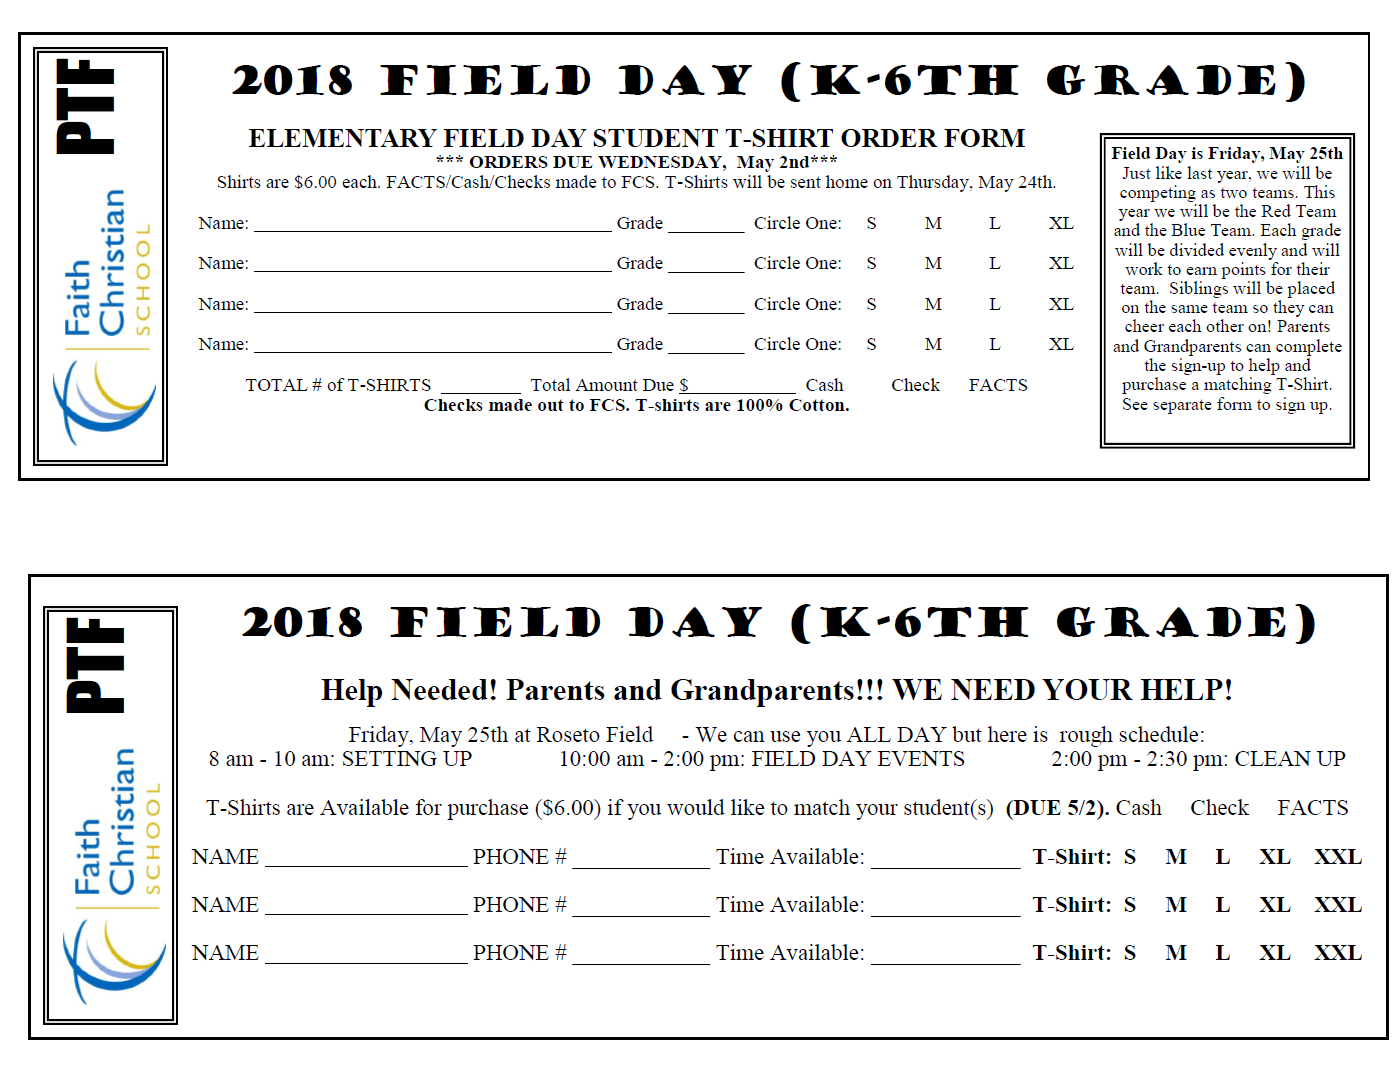 Field Day T-Shirt Order and Volunteer Forms on t shirt quote form, book order form, shirt apparel order form, polo shirt order form, poster order form, belt order form, logo order form, clothing order form, jacket order form, toy order form, work shirt order form, shirt size form, sweater order form, camera order form, design order form, green order form, uniform shirt order form, hooded sweatshirt order form, employee uniform request form, gift order form,